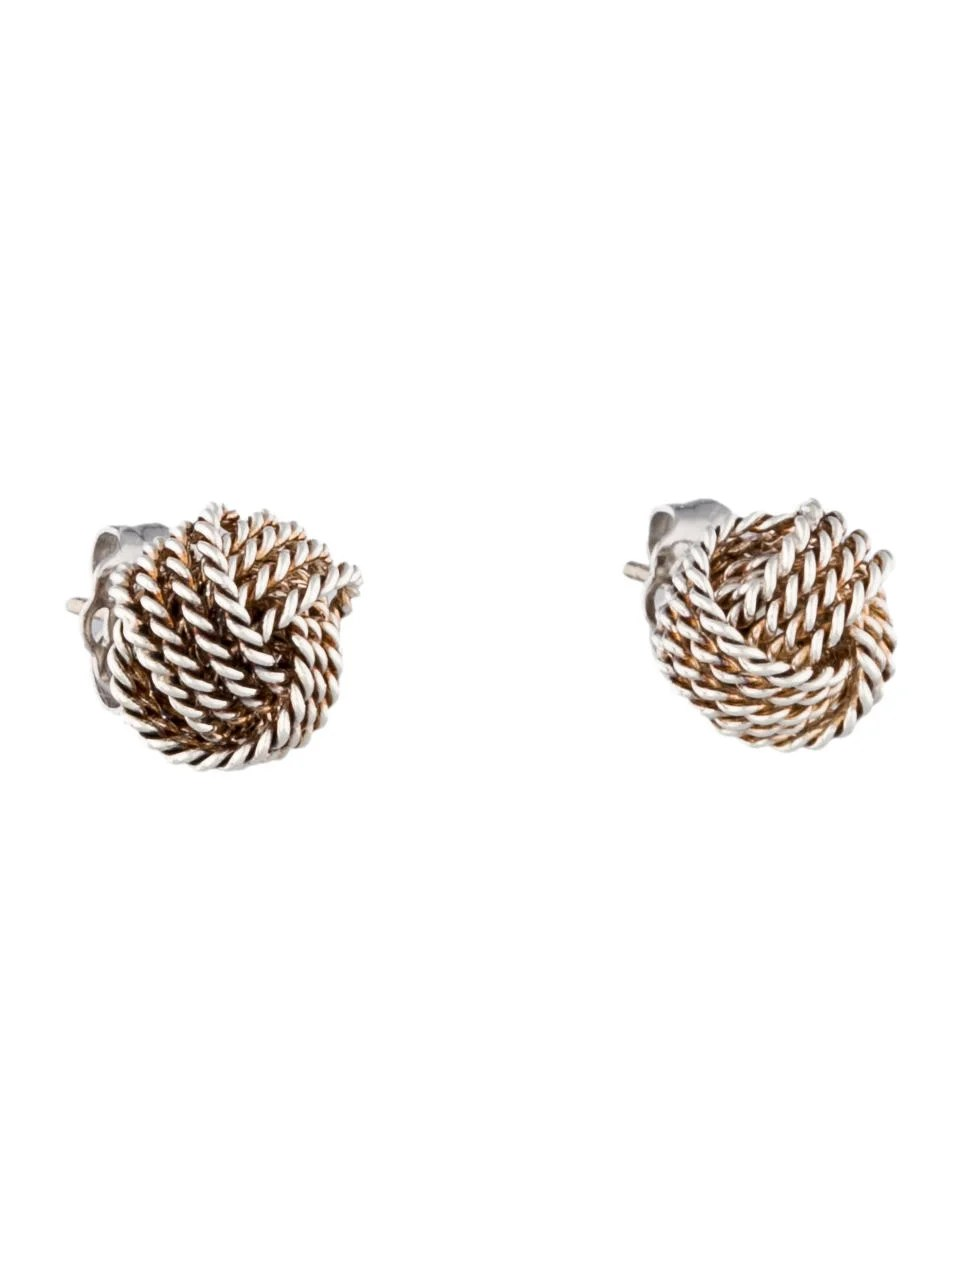 Tiffany & Co. Twist Knot Earrings